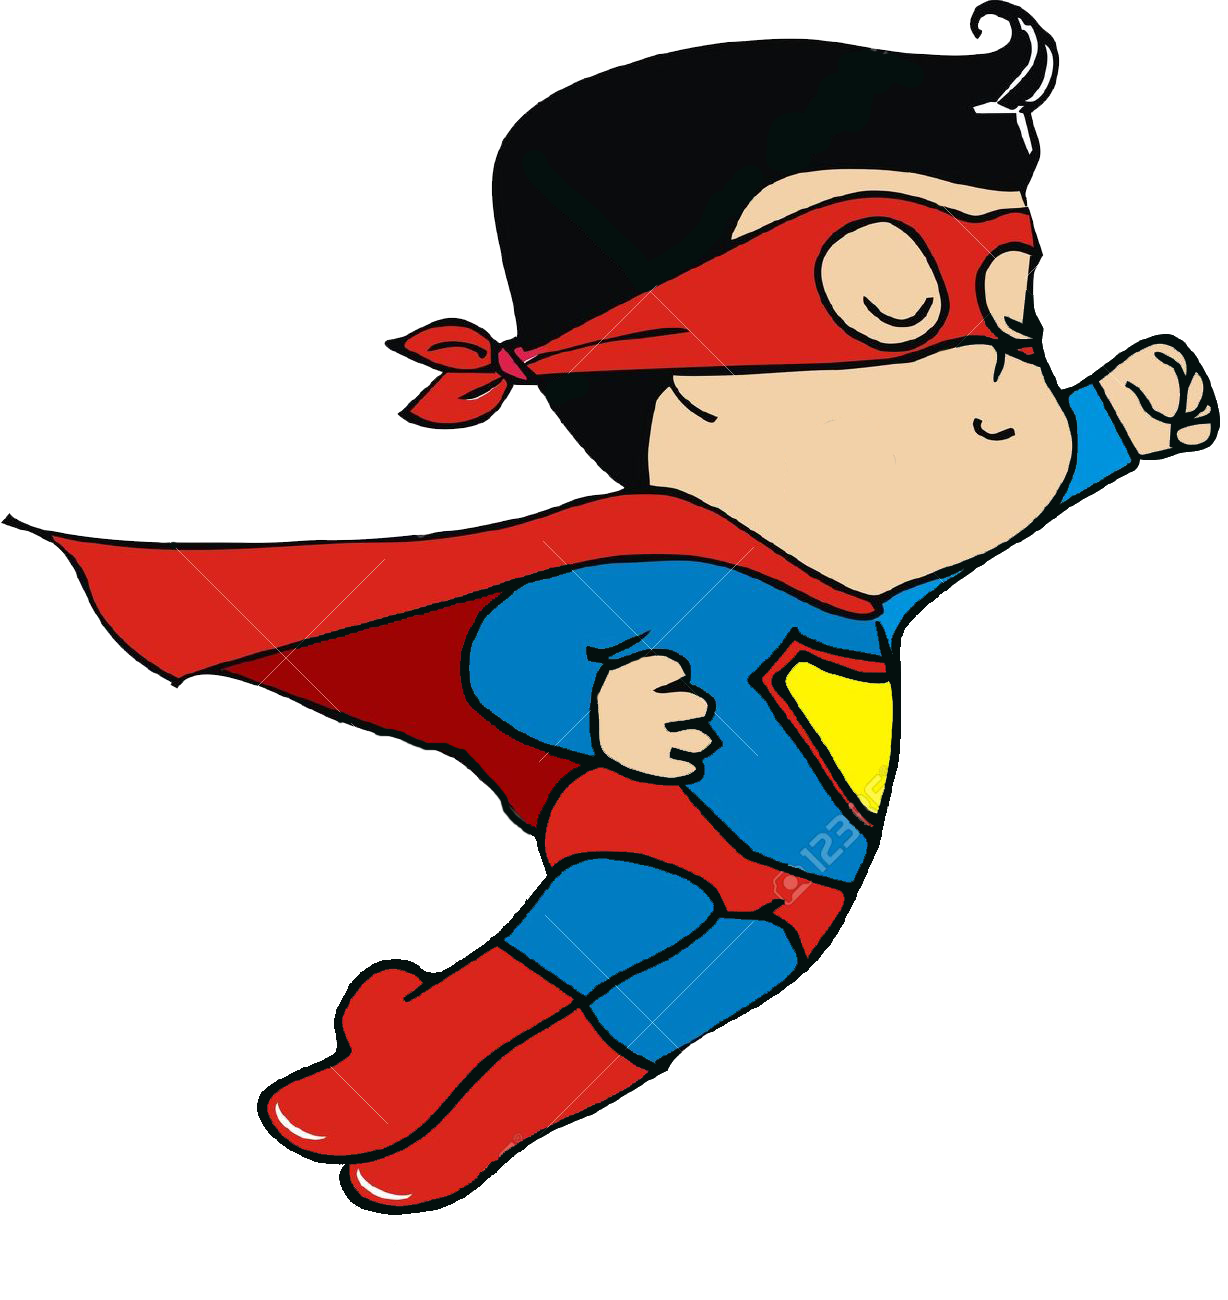 Baby Superman Cartoon Free Baby Superman Cartoon Png Transparent Images 51210 Pngio